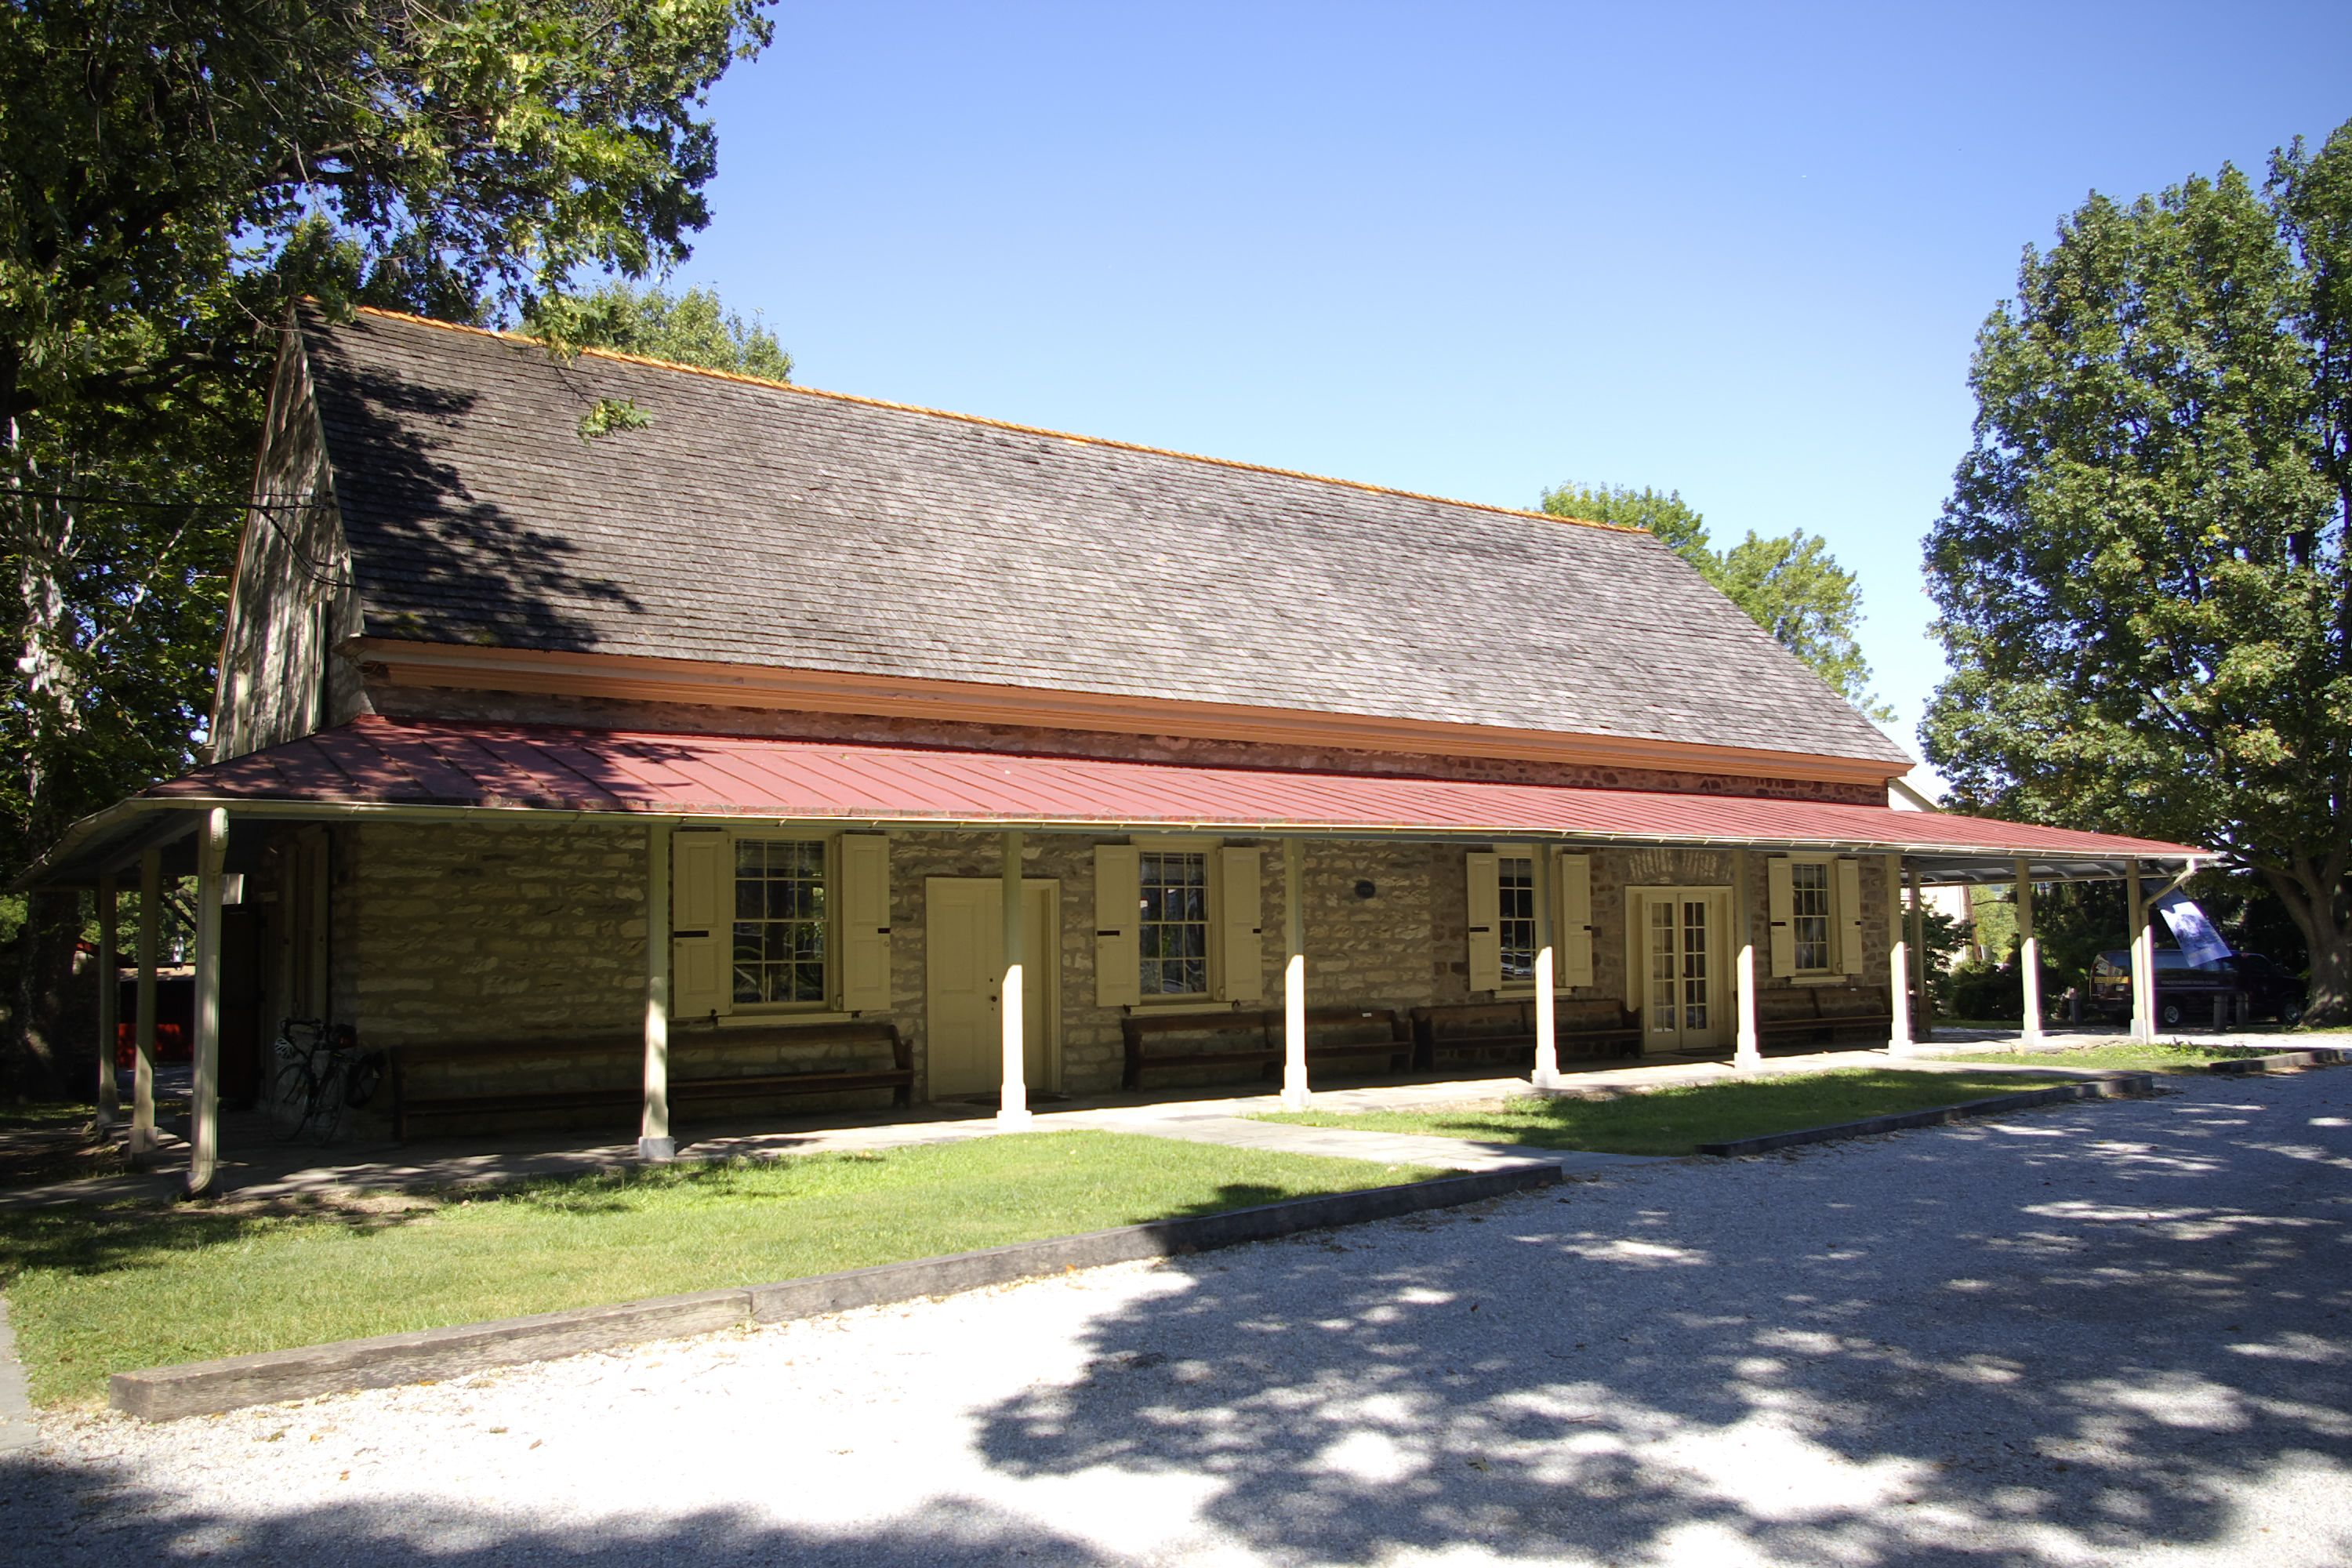 Meeting House in Summer